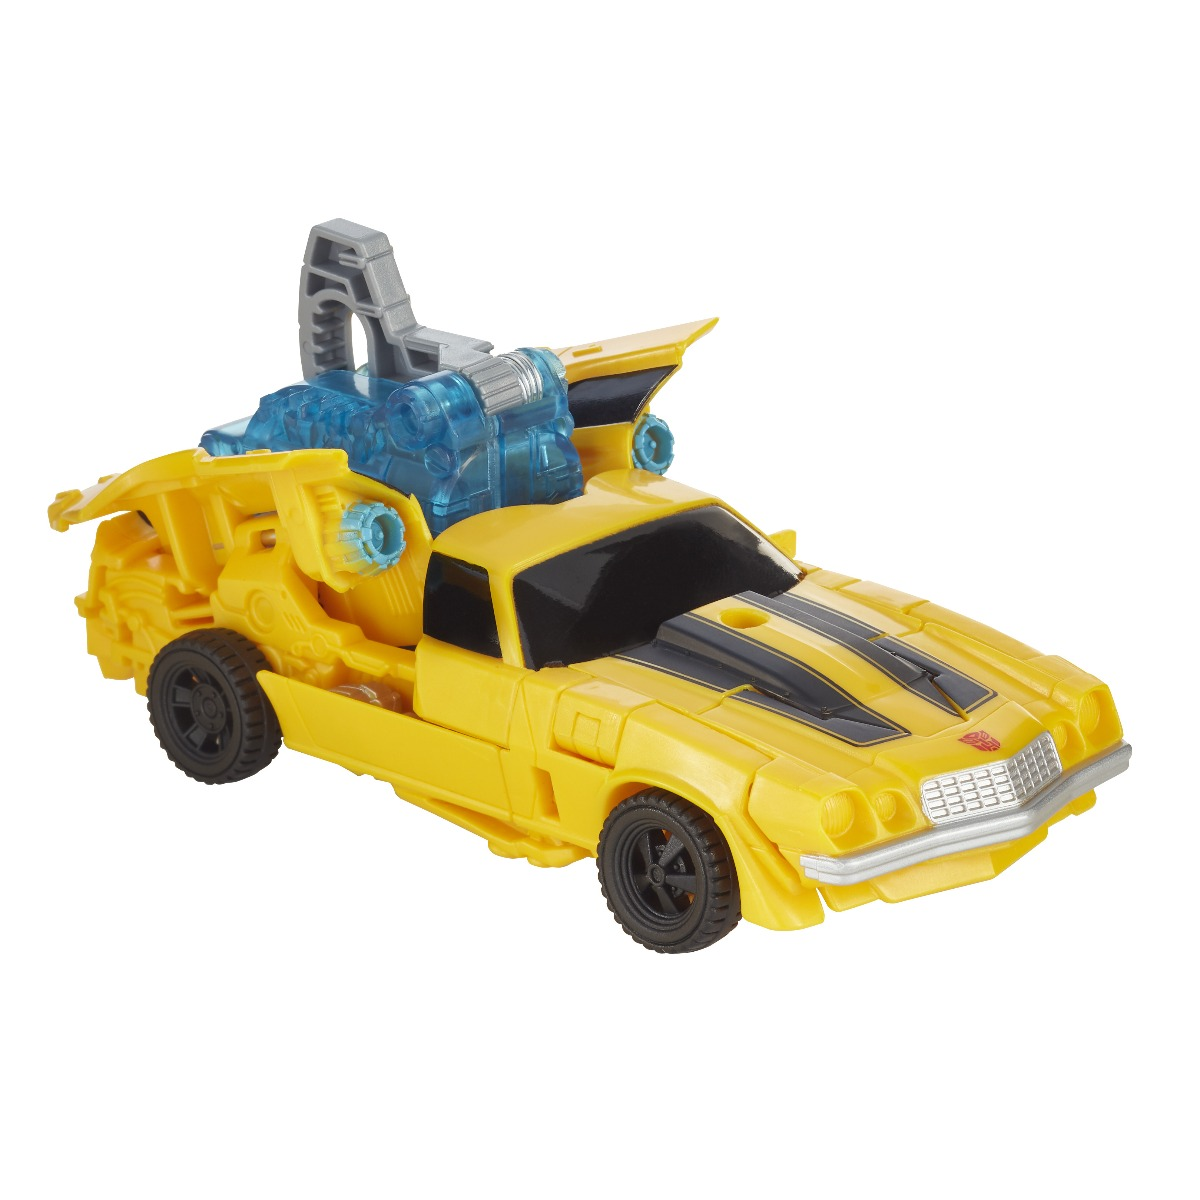 Figurina Transformers Energon Igniters Power Plus Bumblebee Chevrolet Camaro 1977